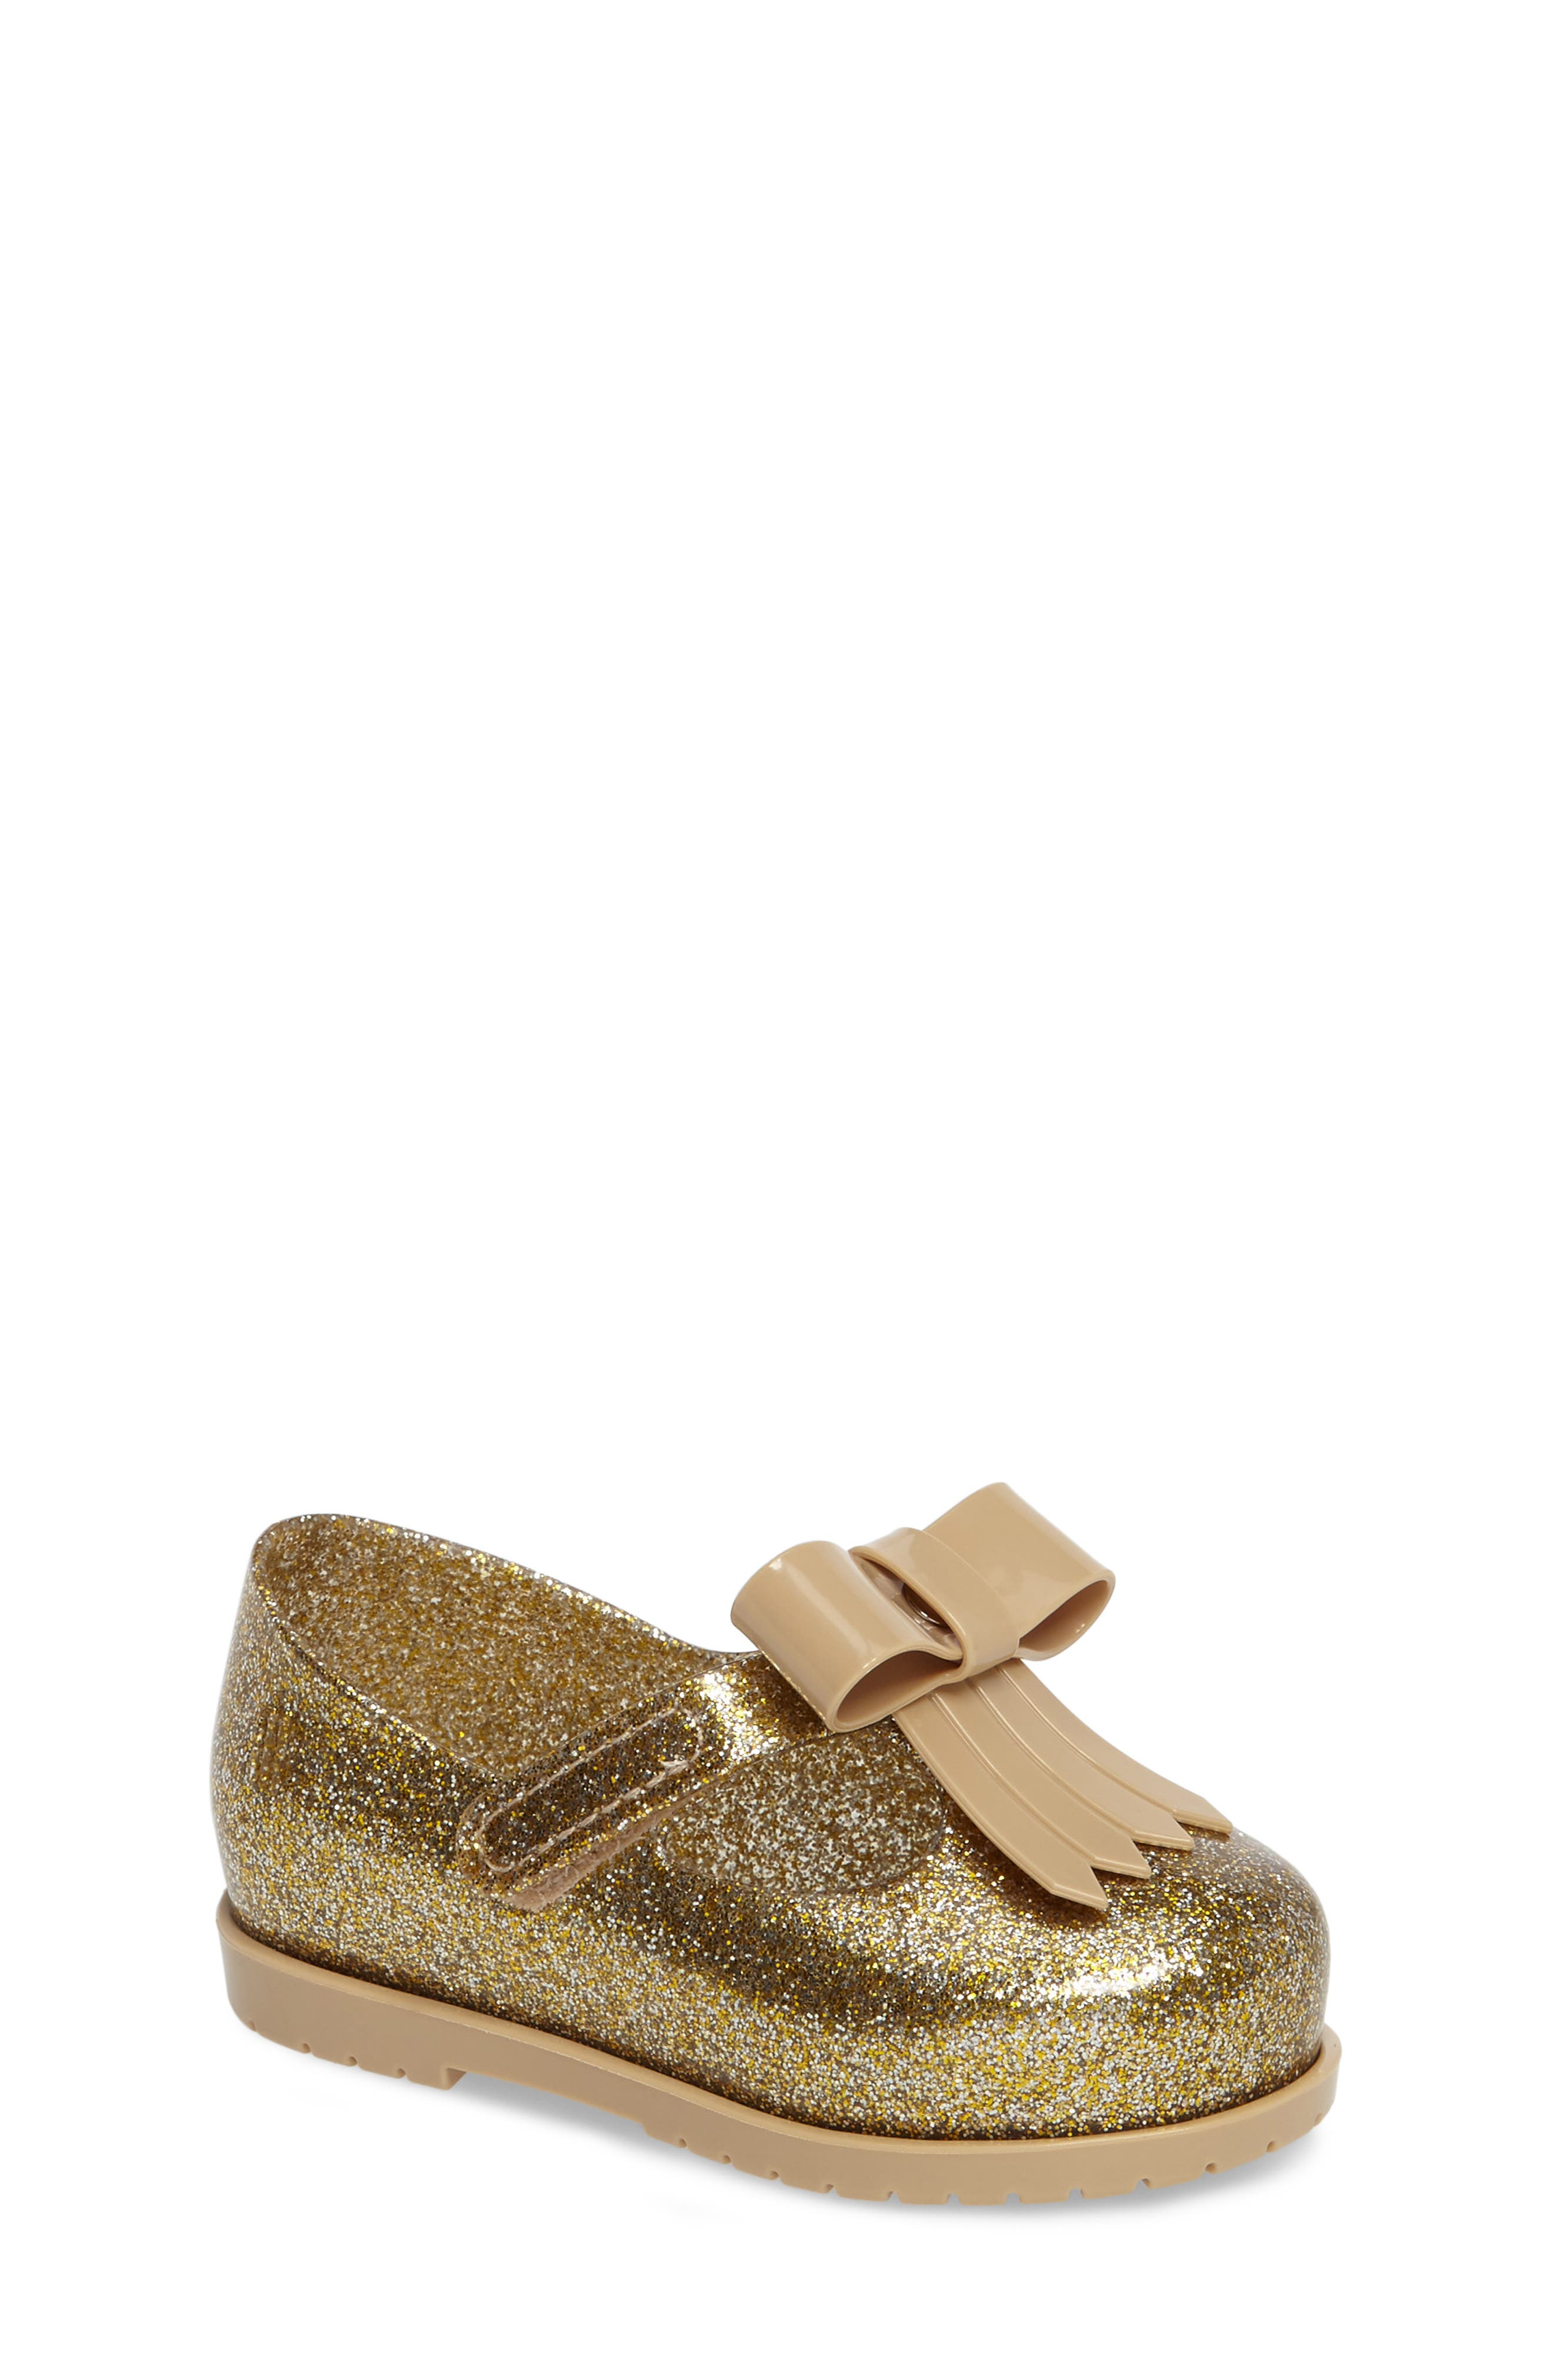 Classic Baby II Mary Jane,                         Main,                         color, Gold Glass Glitter